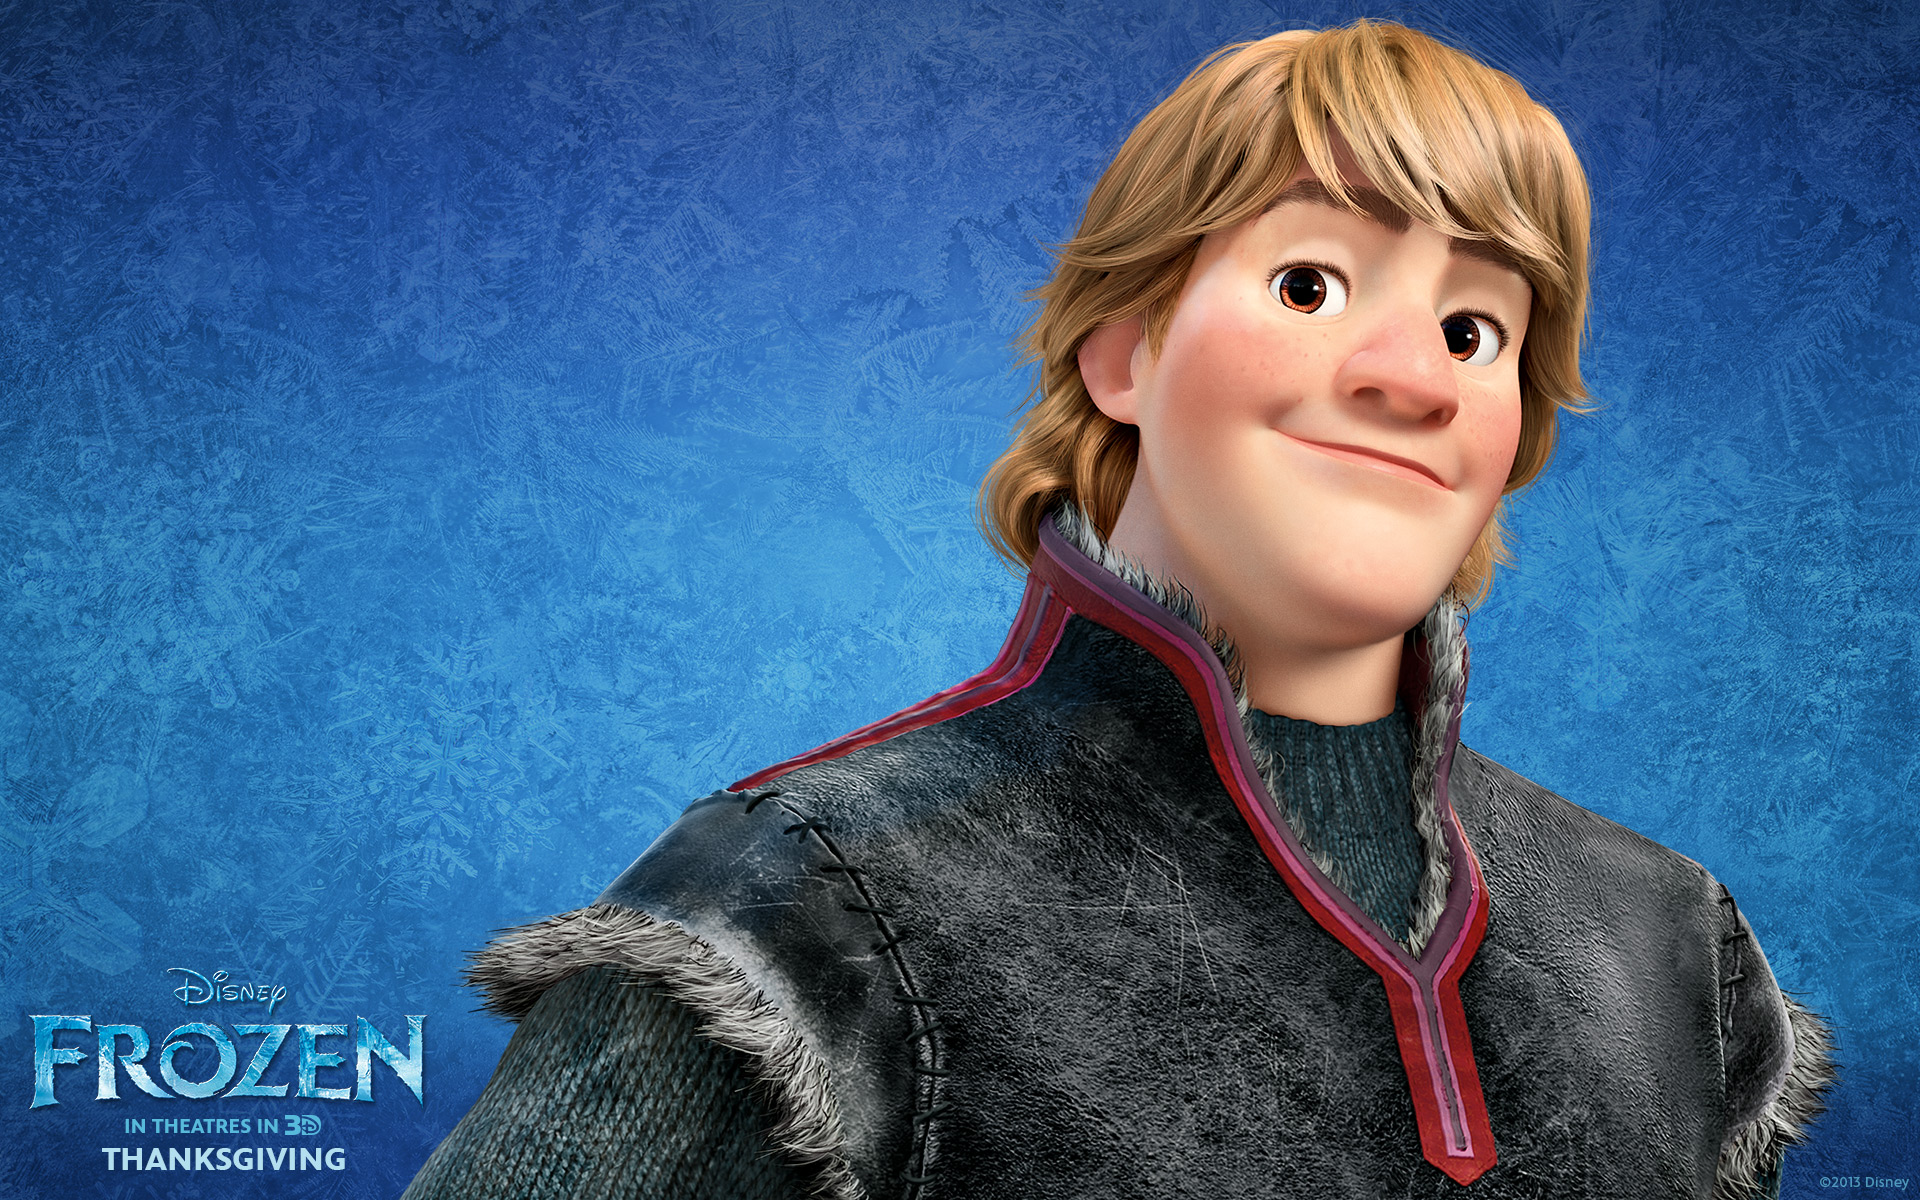 anna and kristoff images kristoff hd wallpaper and background photos